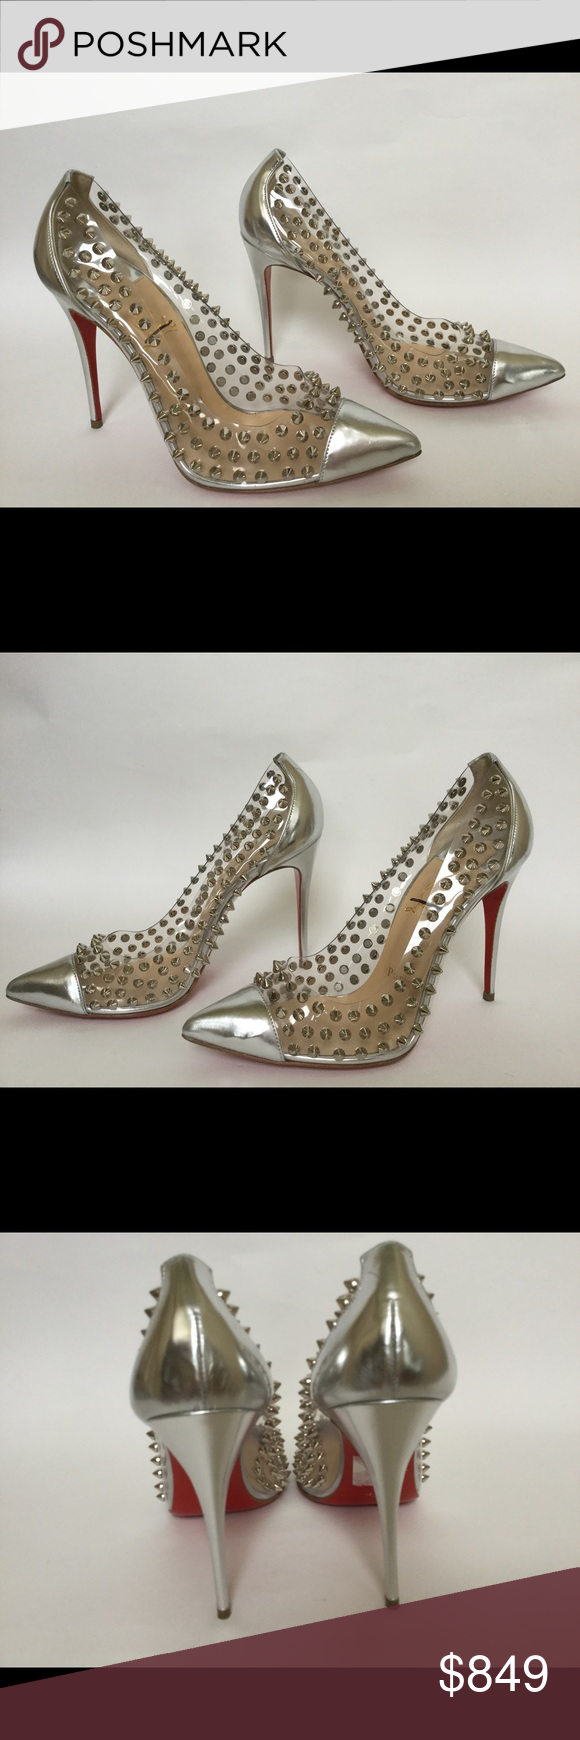 2e1fd2aabe0a Christian Louboutin spike me PVC cap toe pump 38.5 Christian Louboutin  Transparent PVC with silver spikes 4 1 4